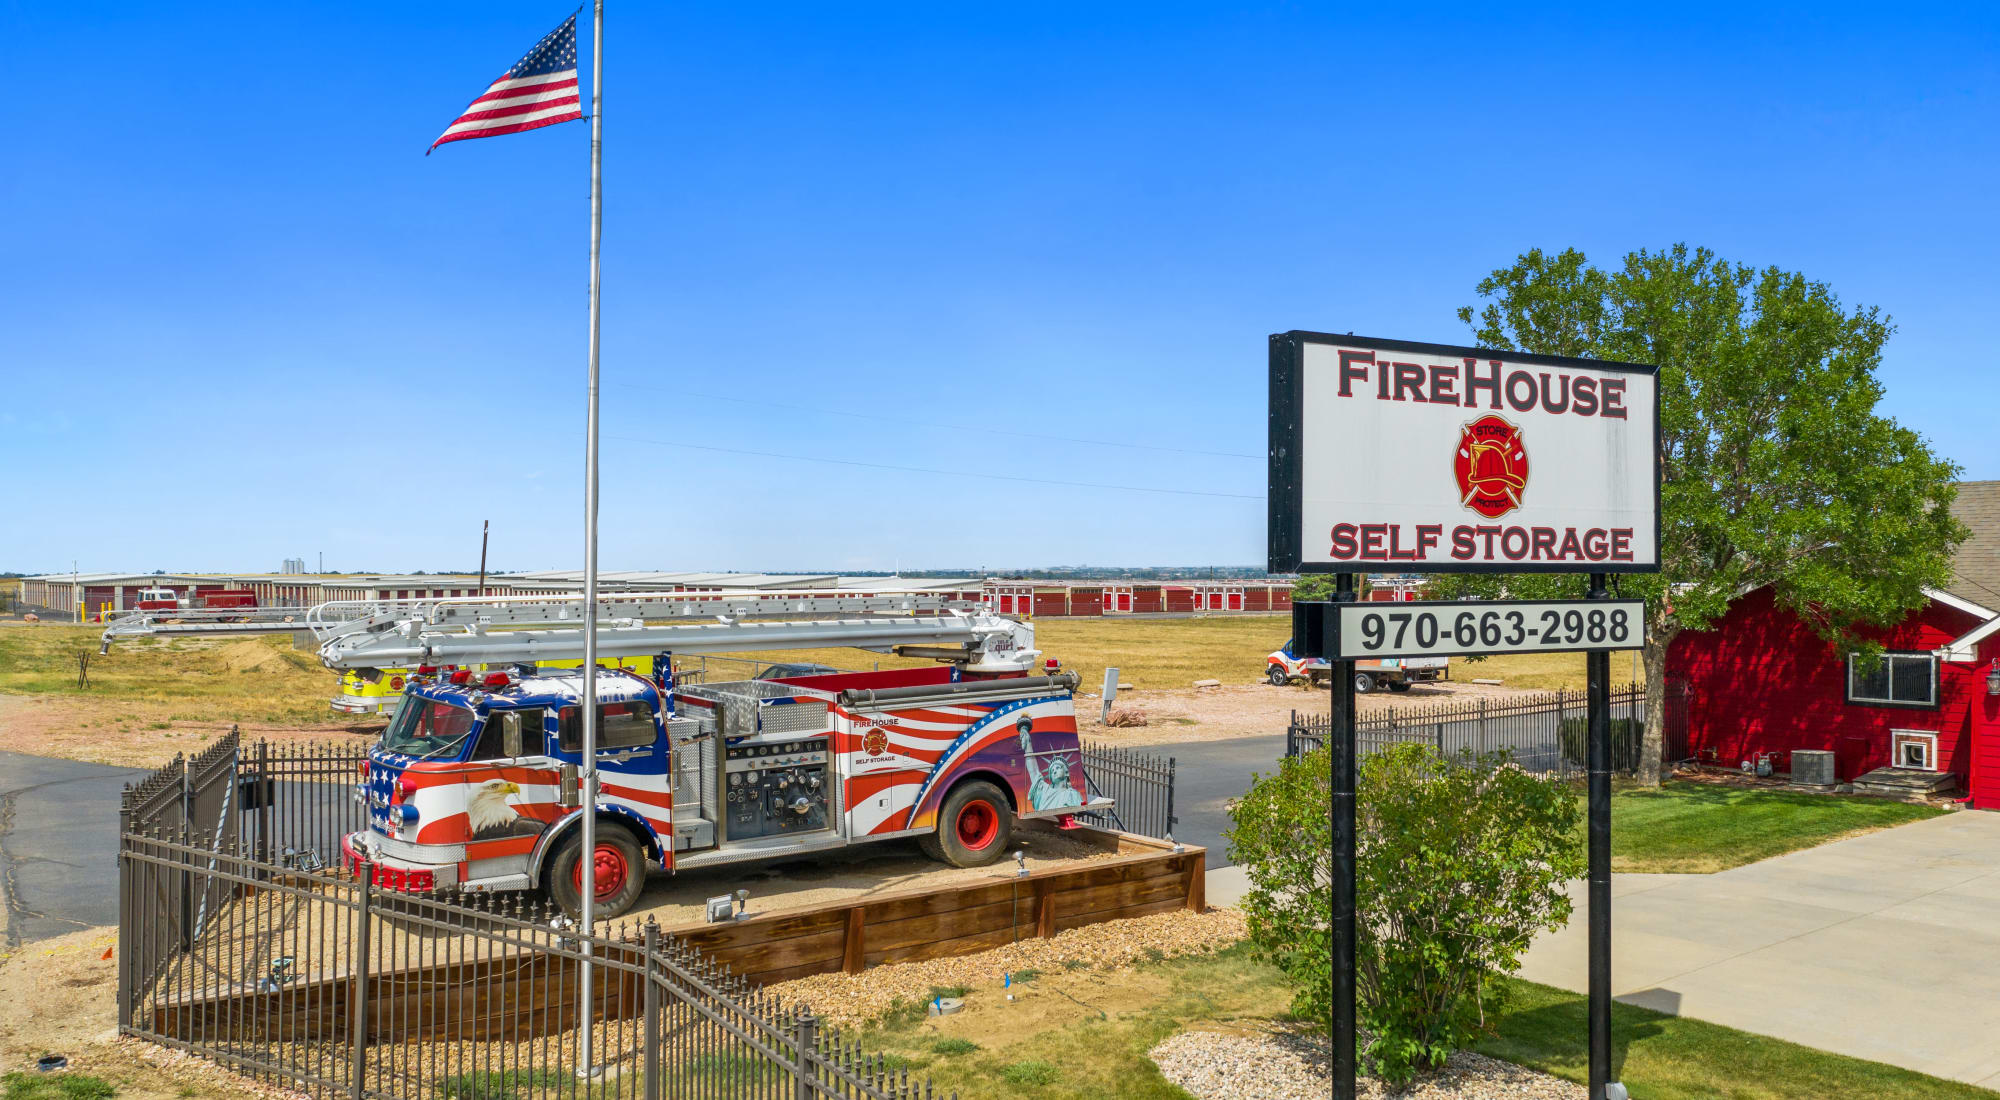 Firehouse Self Storage in Loveland, Colorado